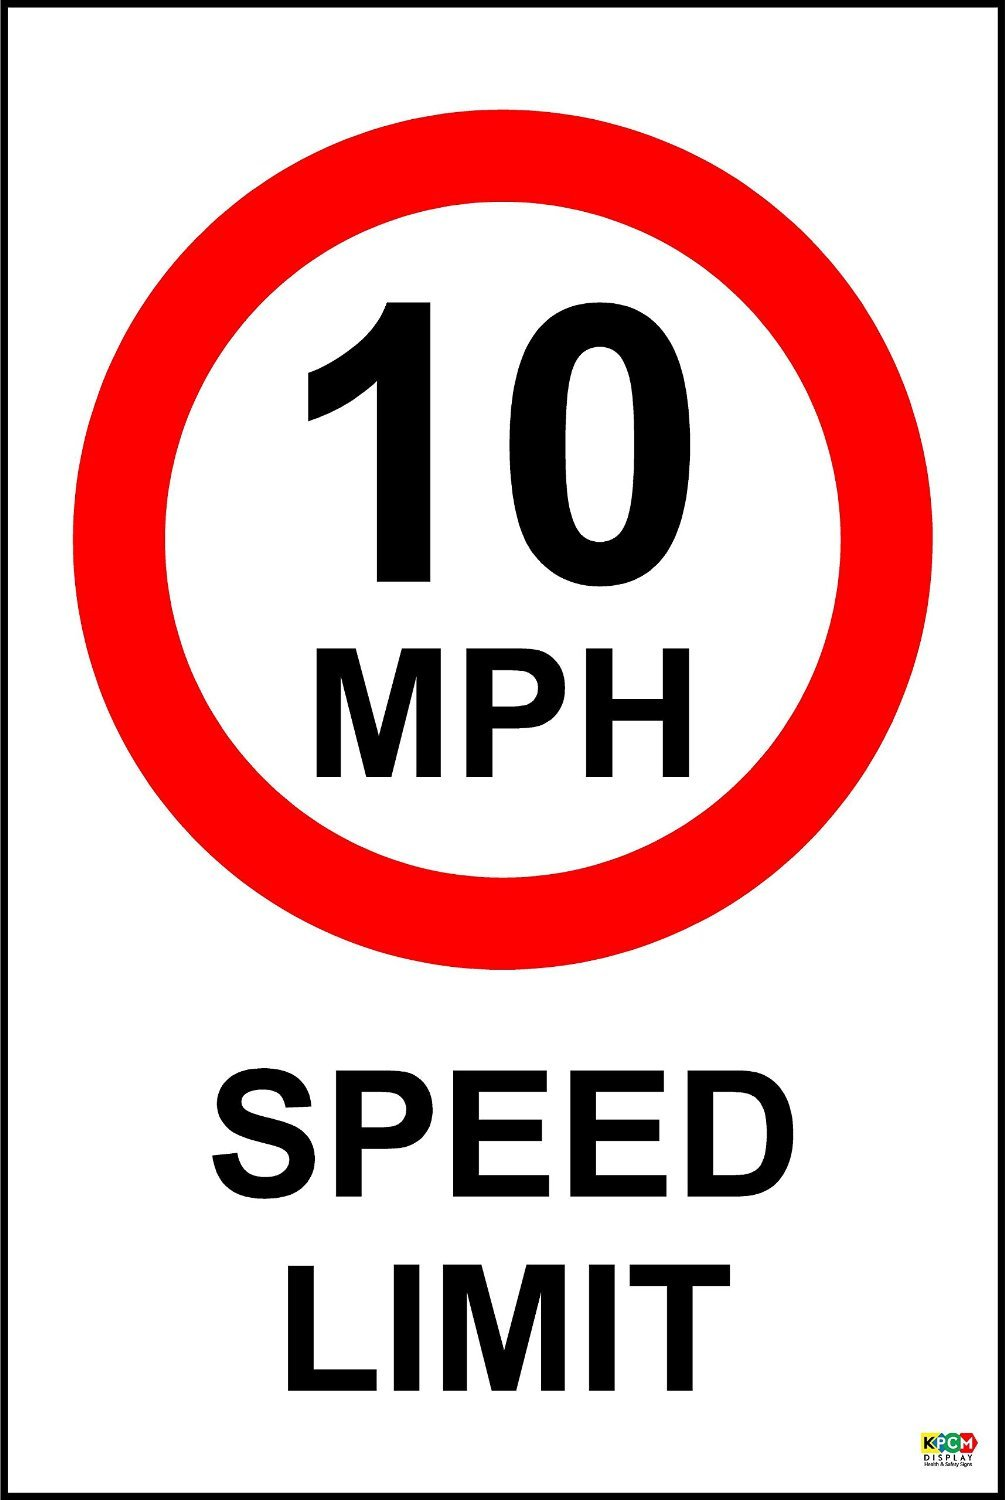 SPEED LIMIT SIGN ROBUST ROAD SAFETY SIGN PLEASE SLOW DOWN 10MPH ROAD SIGN